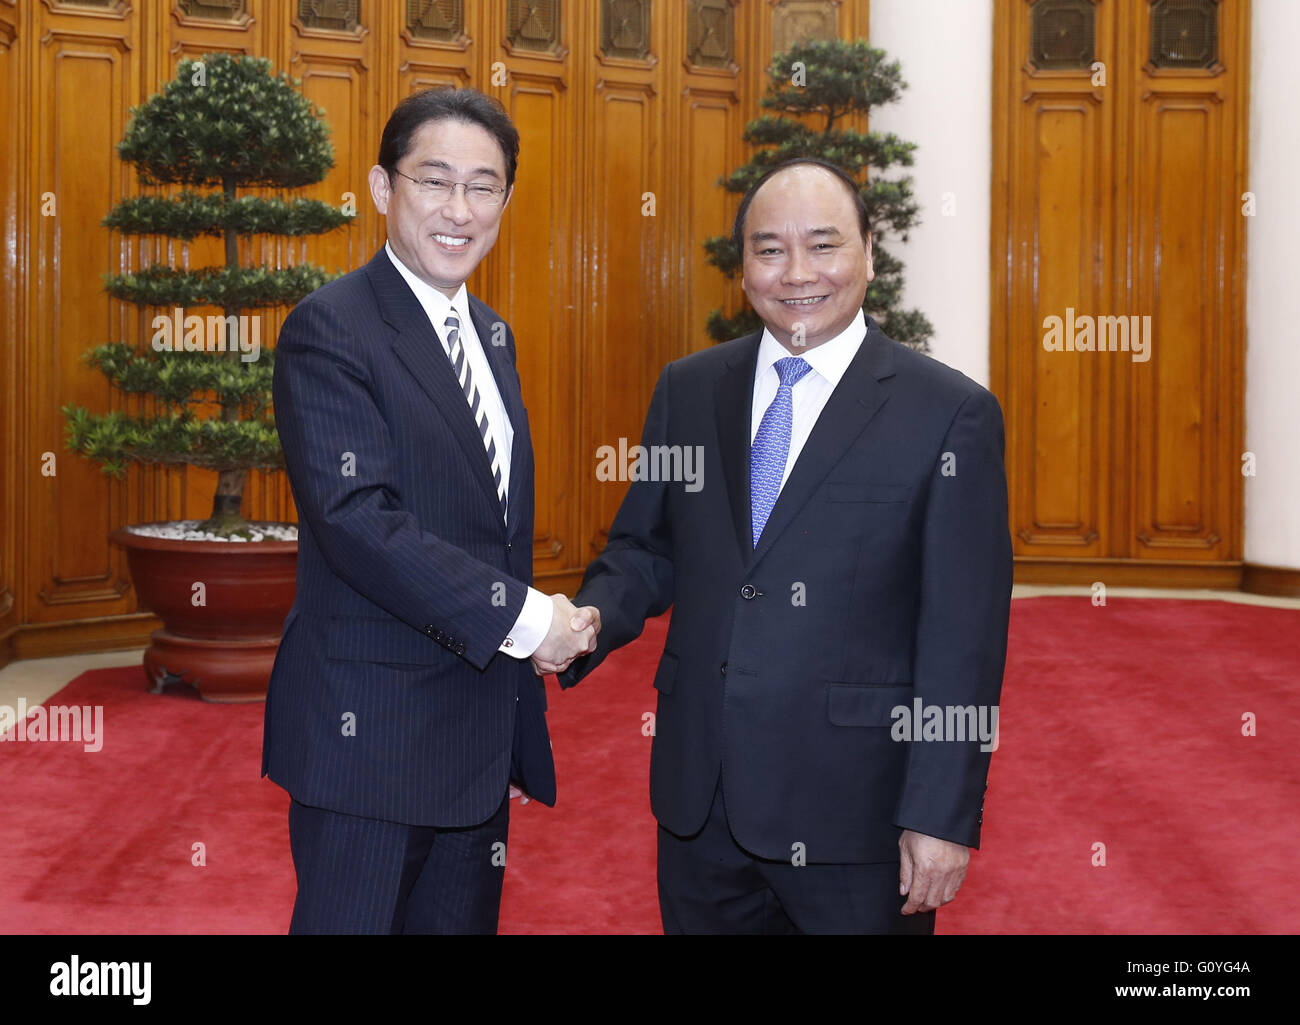 Hanoi, Vietnam. 5th May, 2016. Japanese Foreign Minister Fumio Kishida (L) meets with Vietnam's Prime Minister - Stock Image